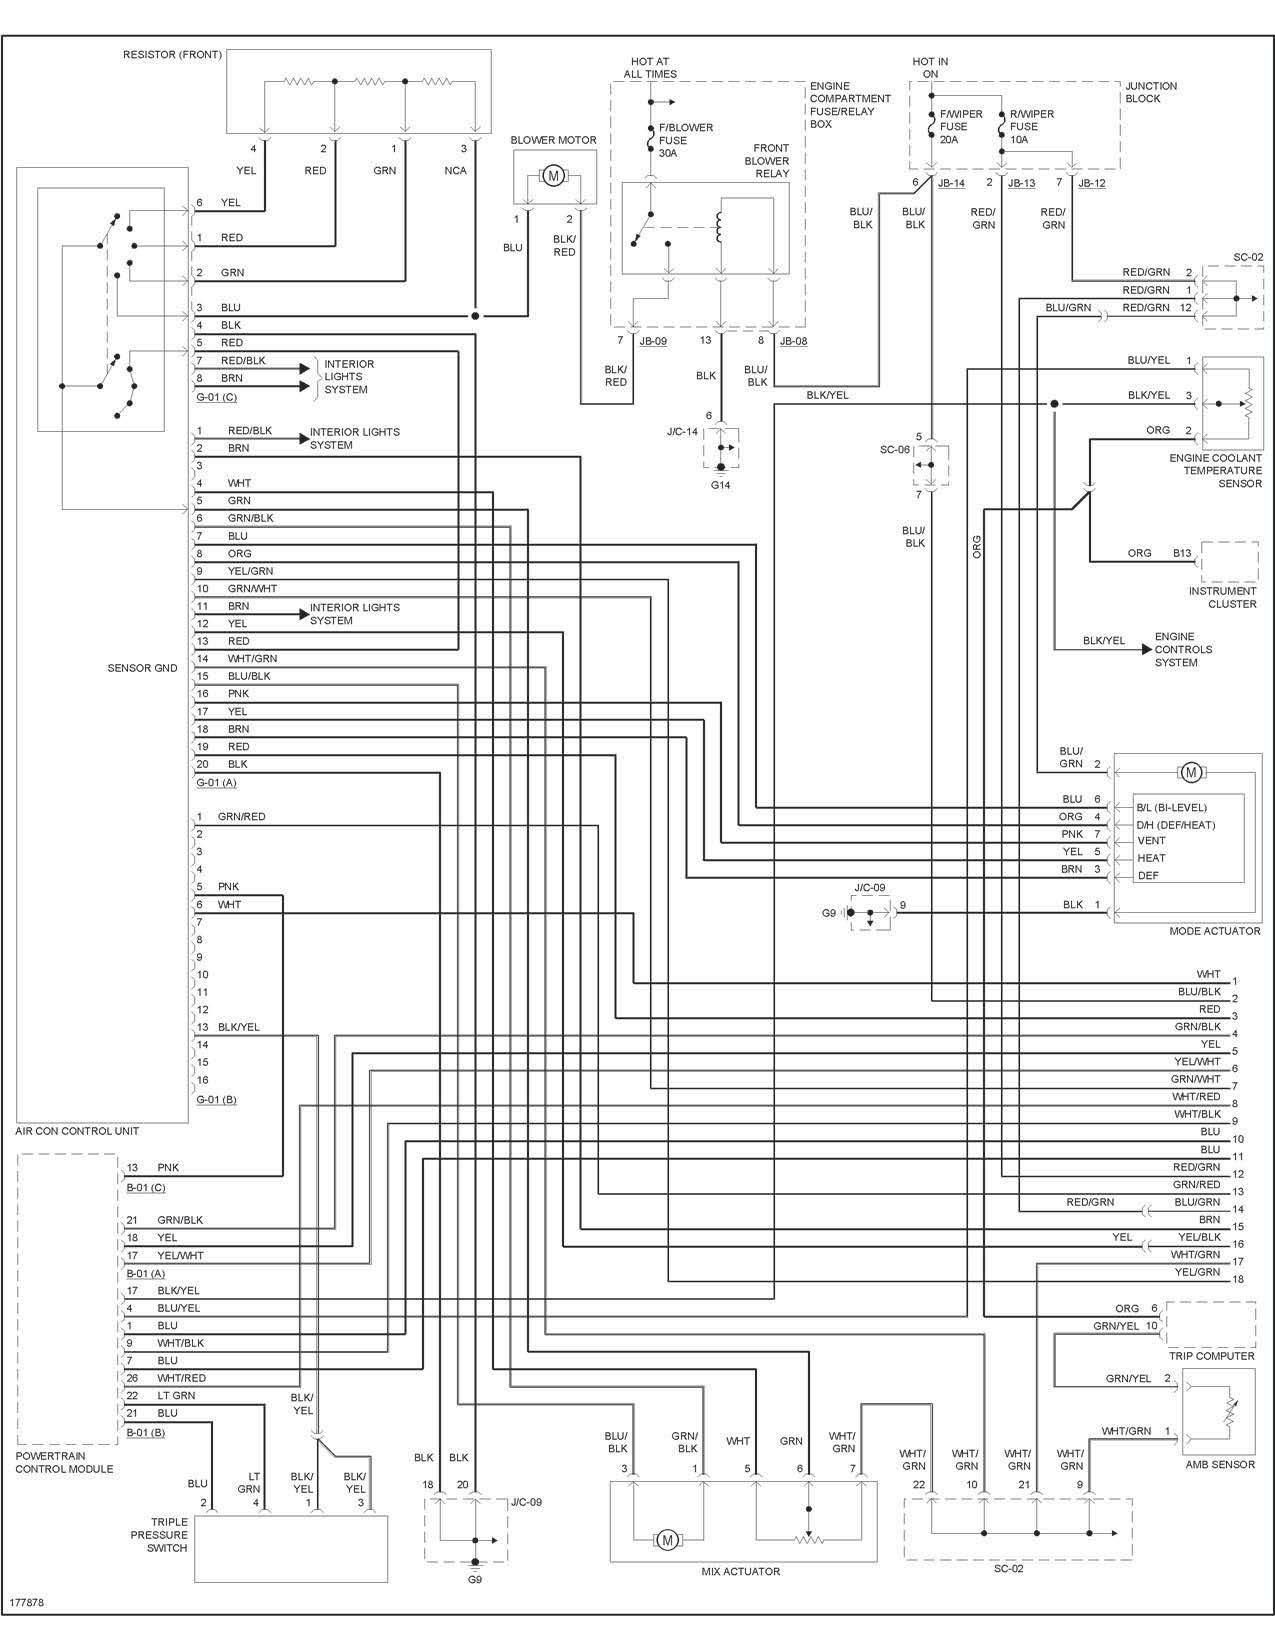 2004 Kia Amanti Engine Diagram 2002 Kia Sedona Wiring Diagram Further 2005 Kia Sedona Wiring Of 2004 Kia Amanti Engine Diagram